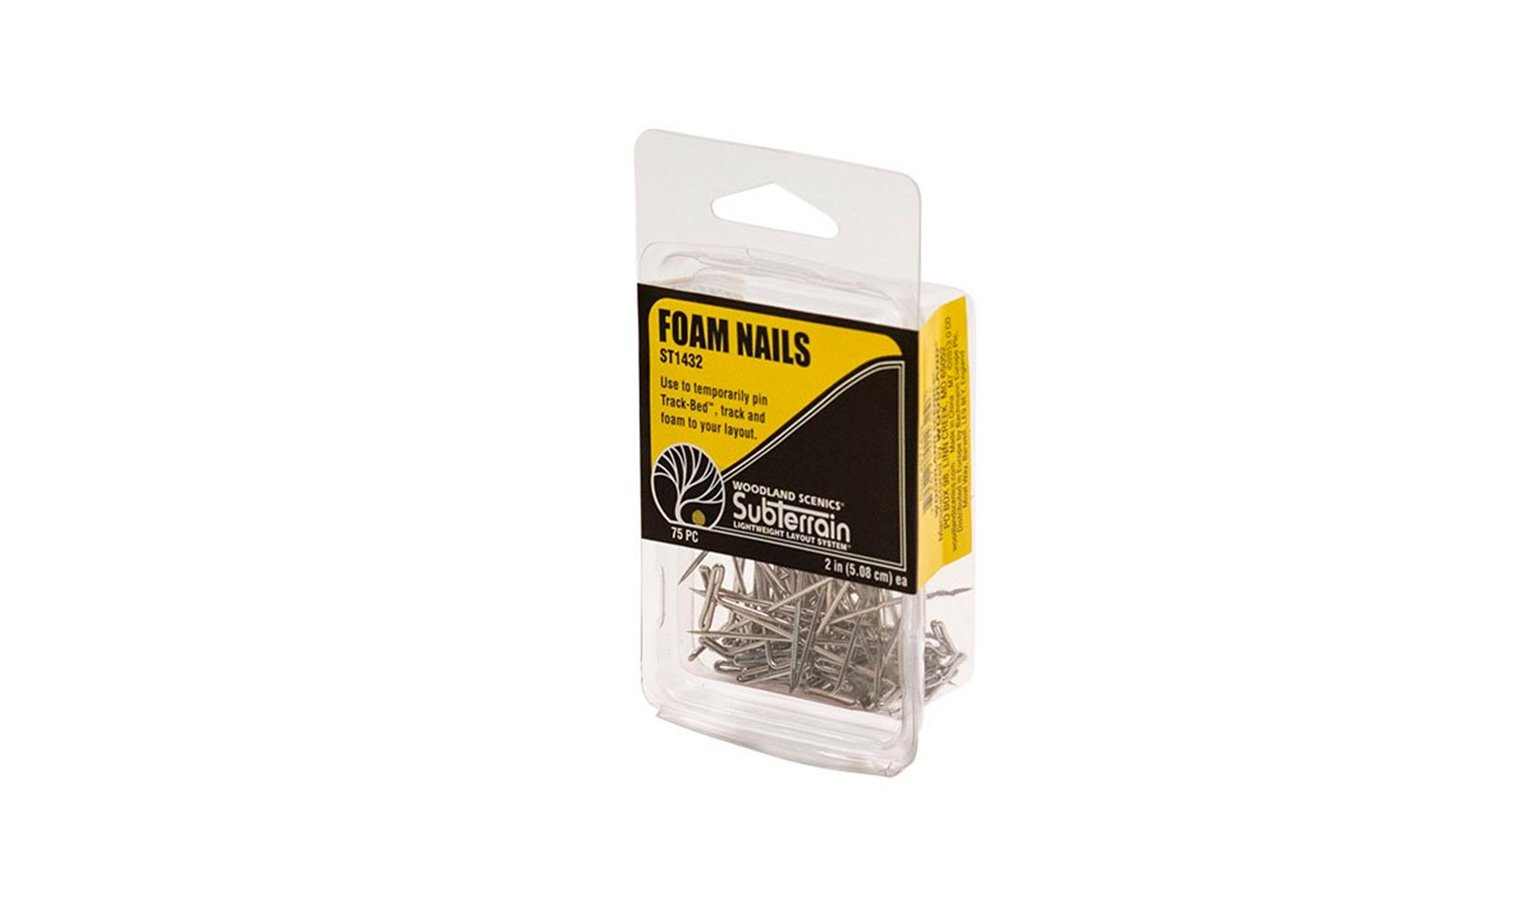 Foam nails - 2 inches (Pack of 75)